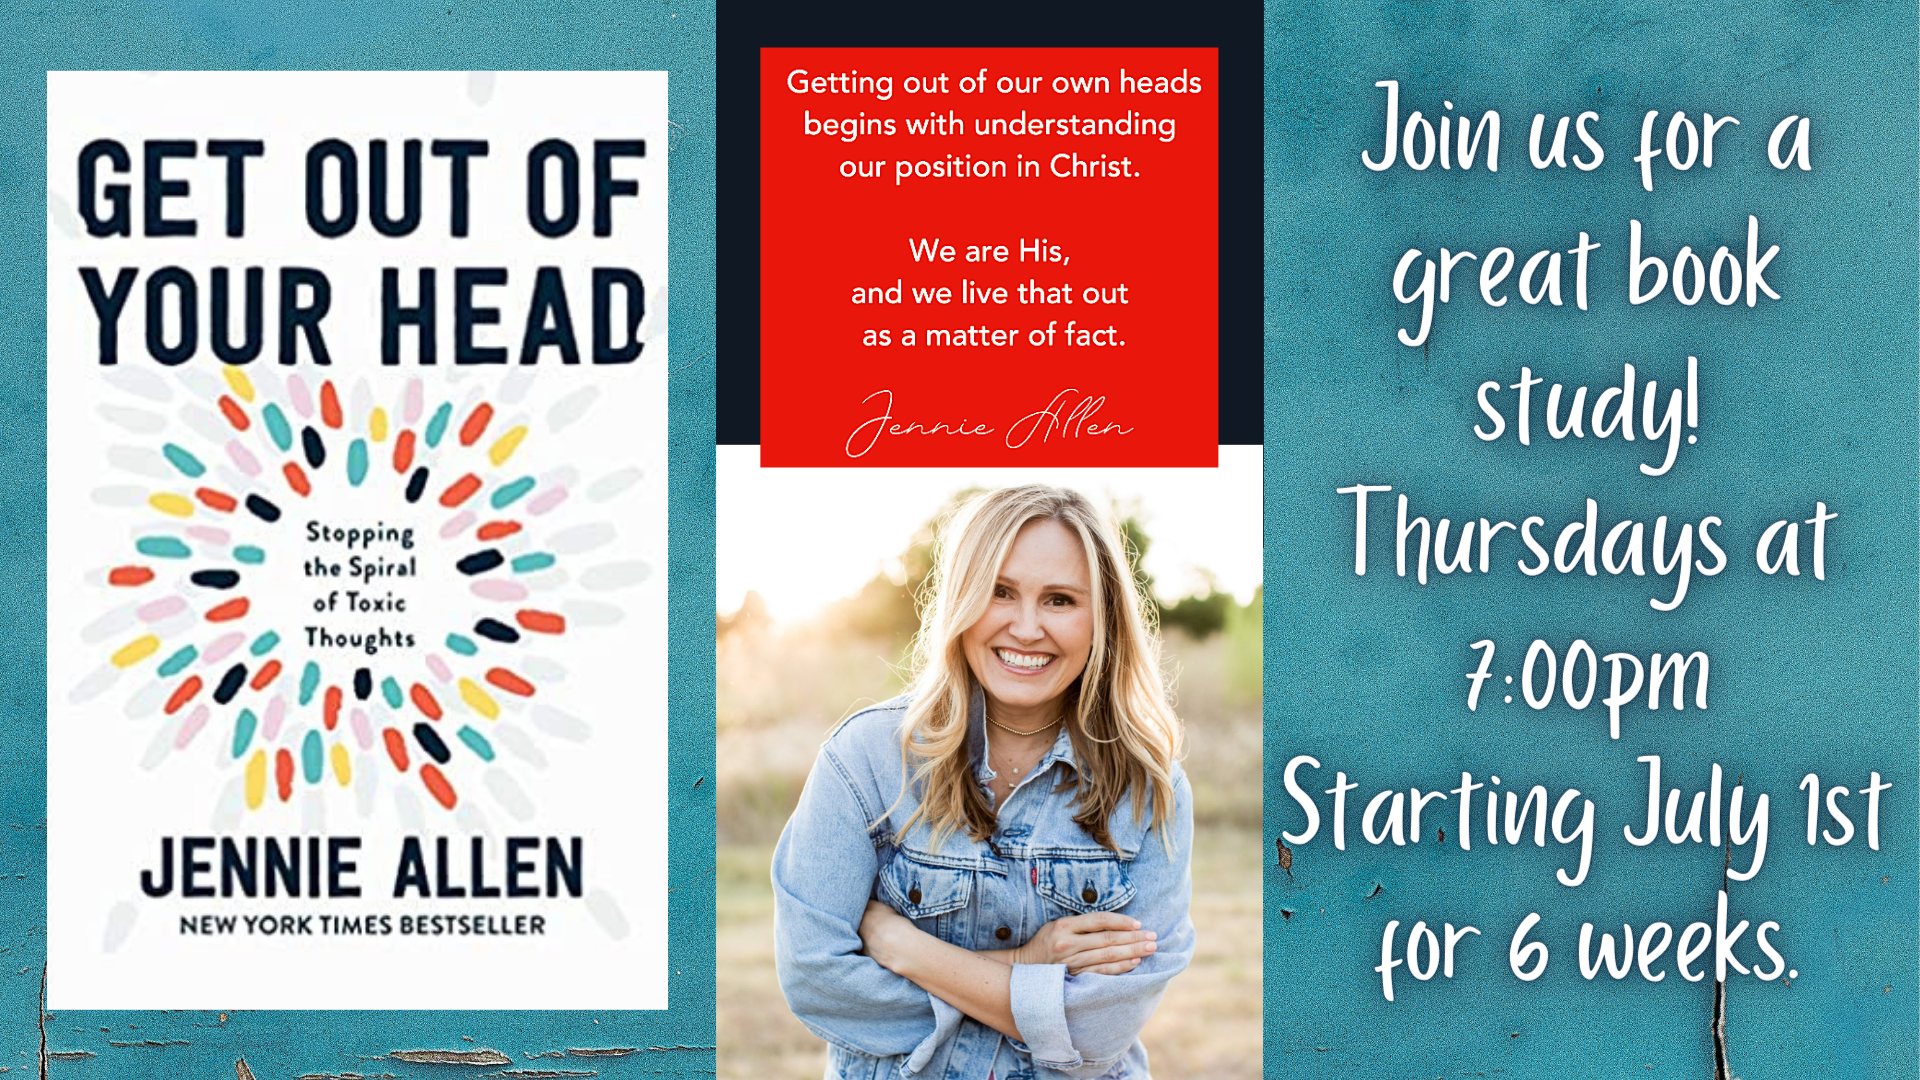 Get Out of Your Head book study